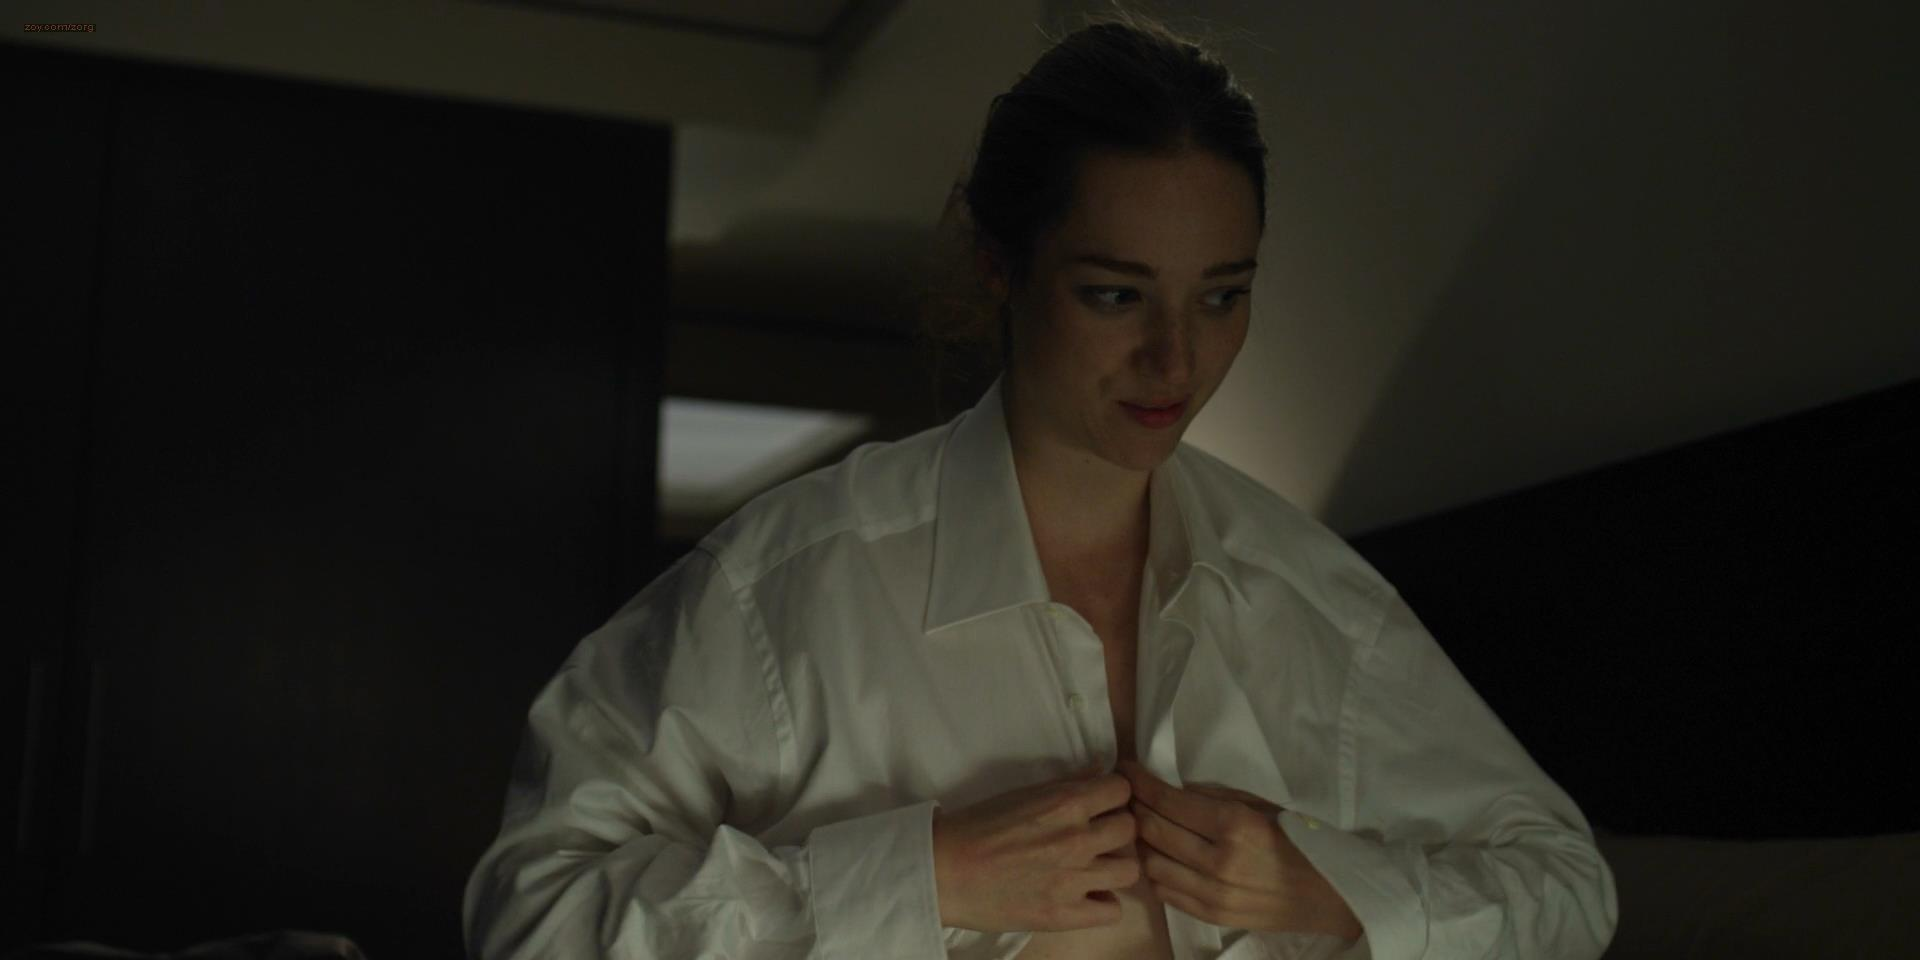 Kristen connolly house of cards 1